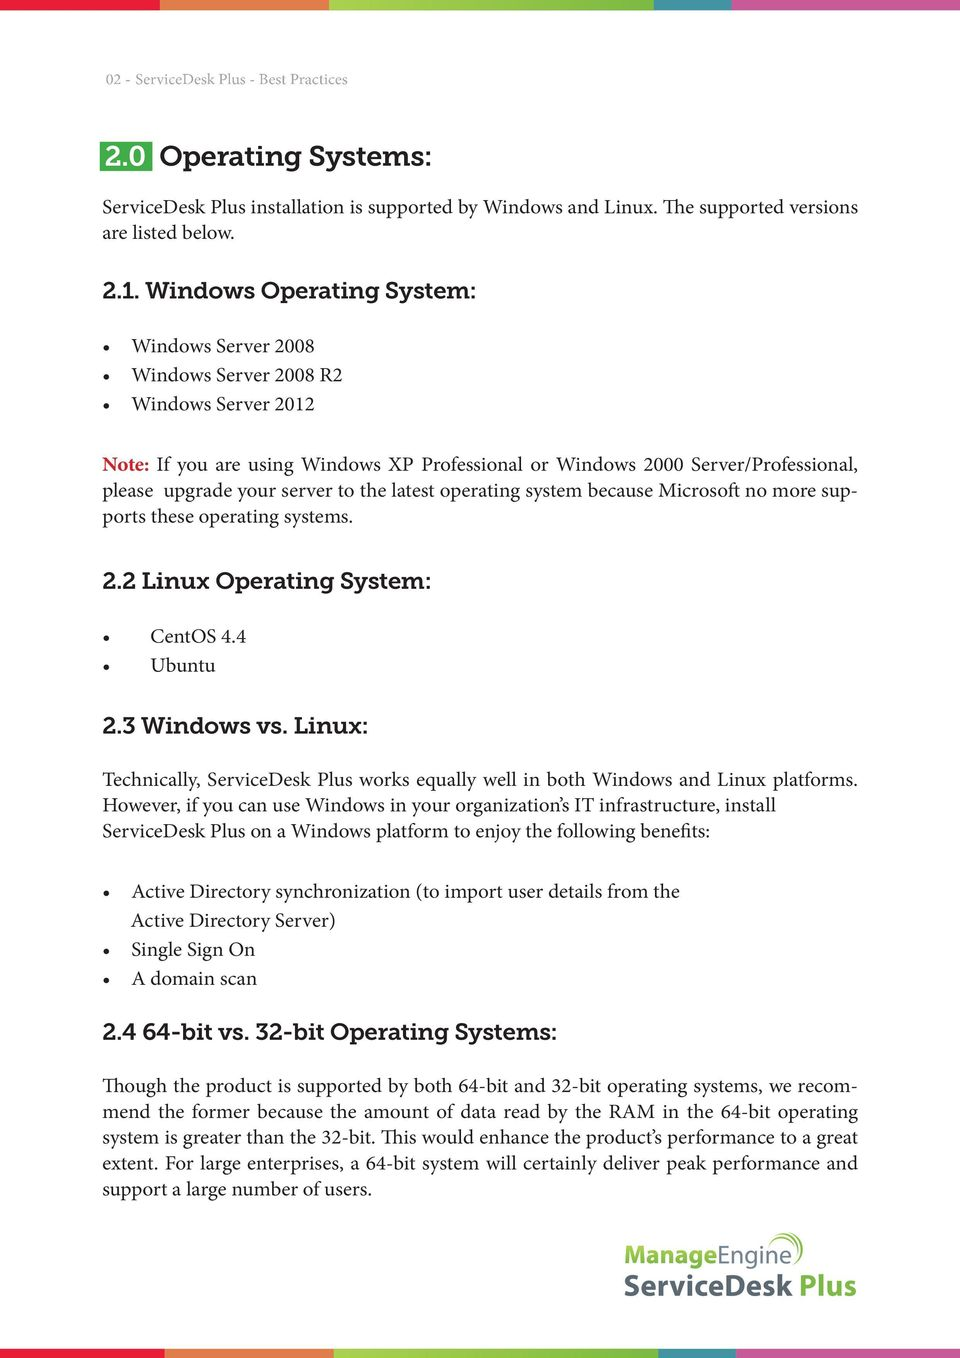 operating systems. 2.2 Linux Operating System: CentOS 4.4 Ubuntu 2.3 vs. Linux: Technically, ServiceDesk Plus works equally well in both and Linux platforms.